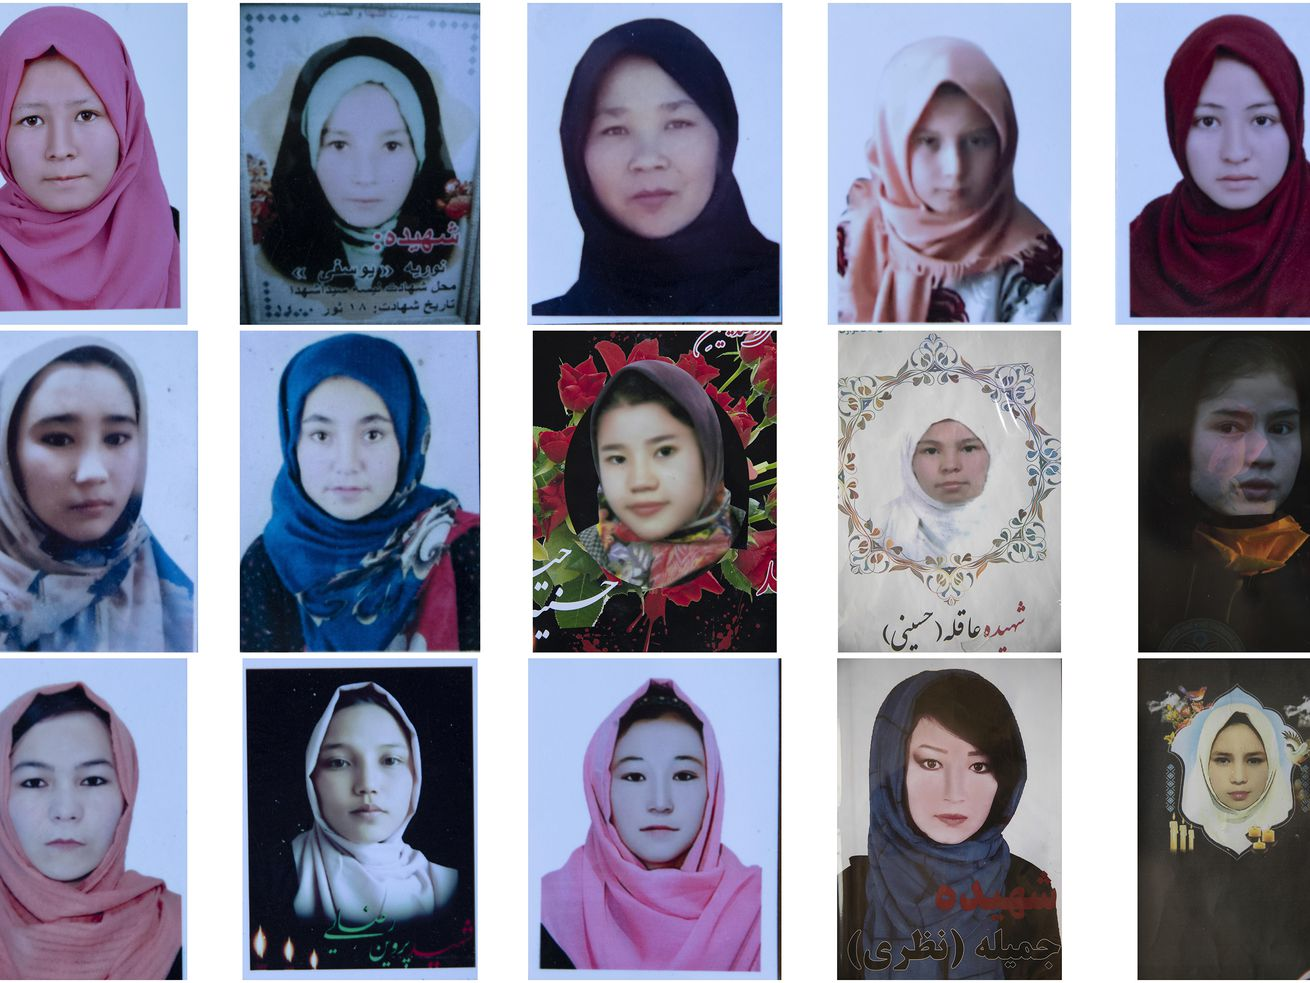 This combination photo shows portraits of Afghan Hazara school girls who were among nearly 100 people killed in bombing attacks outside their school on May 8, 2021.